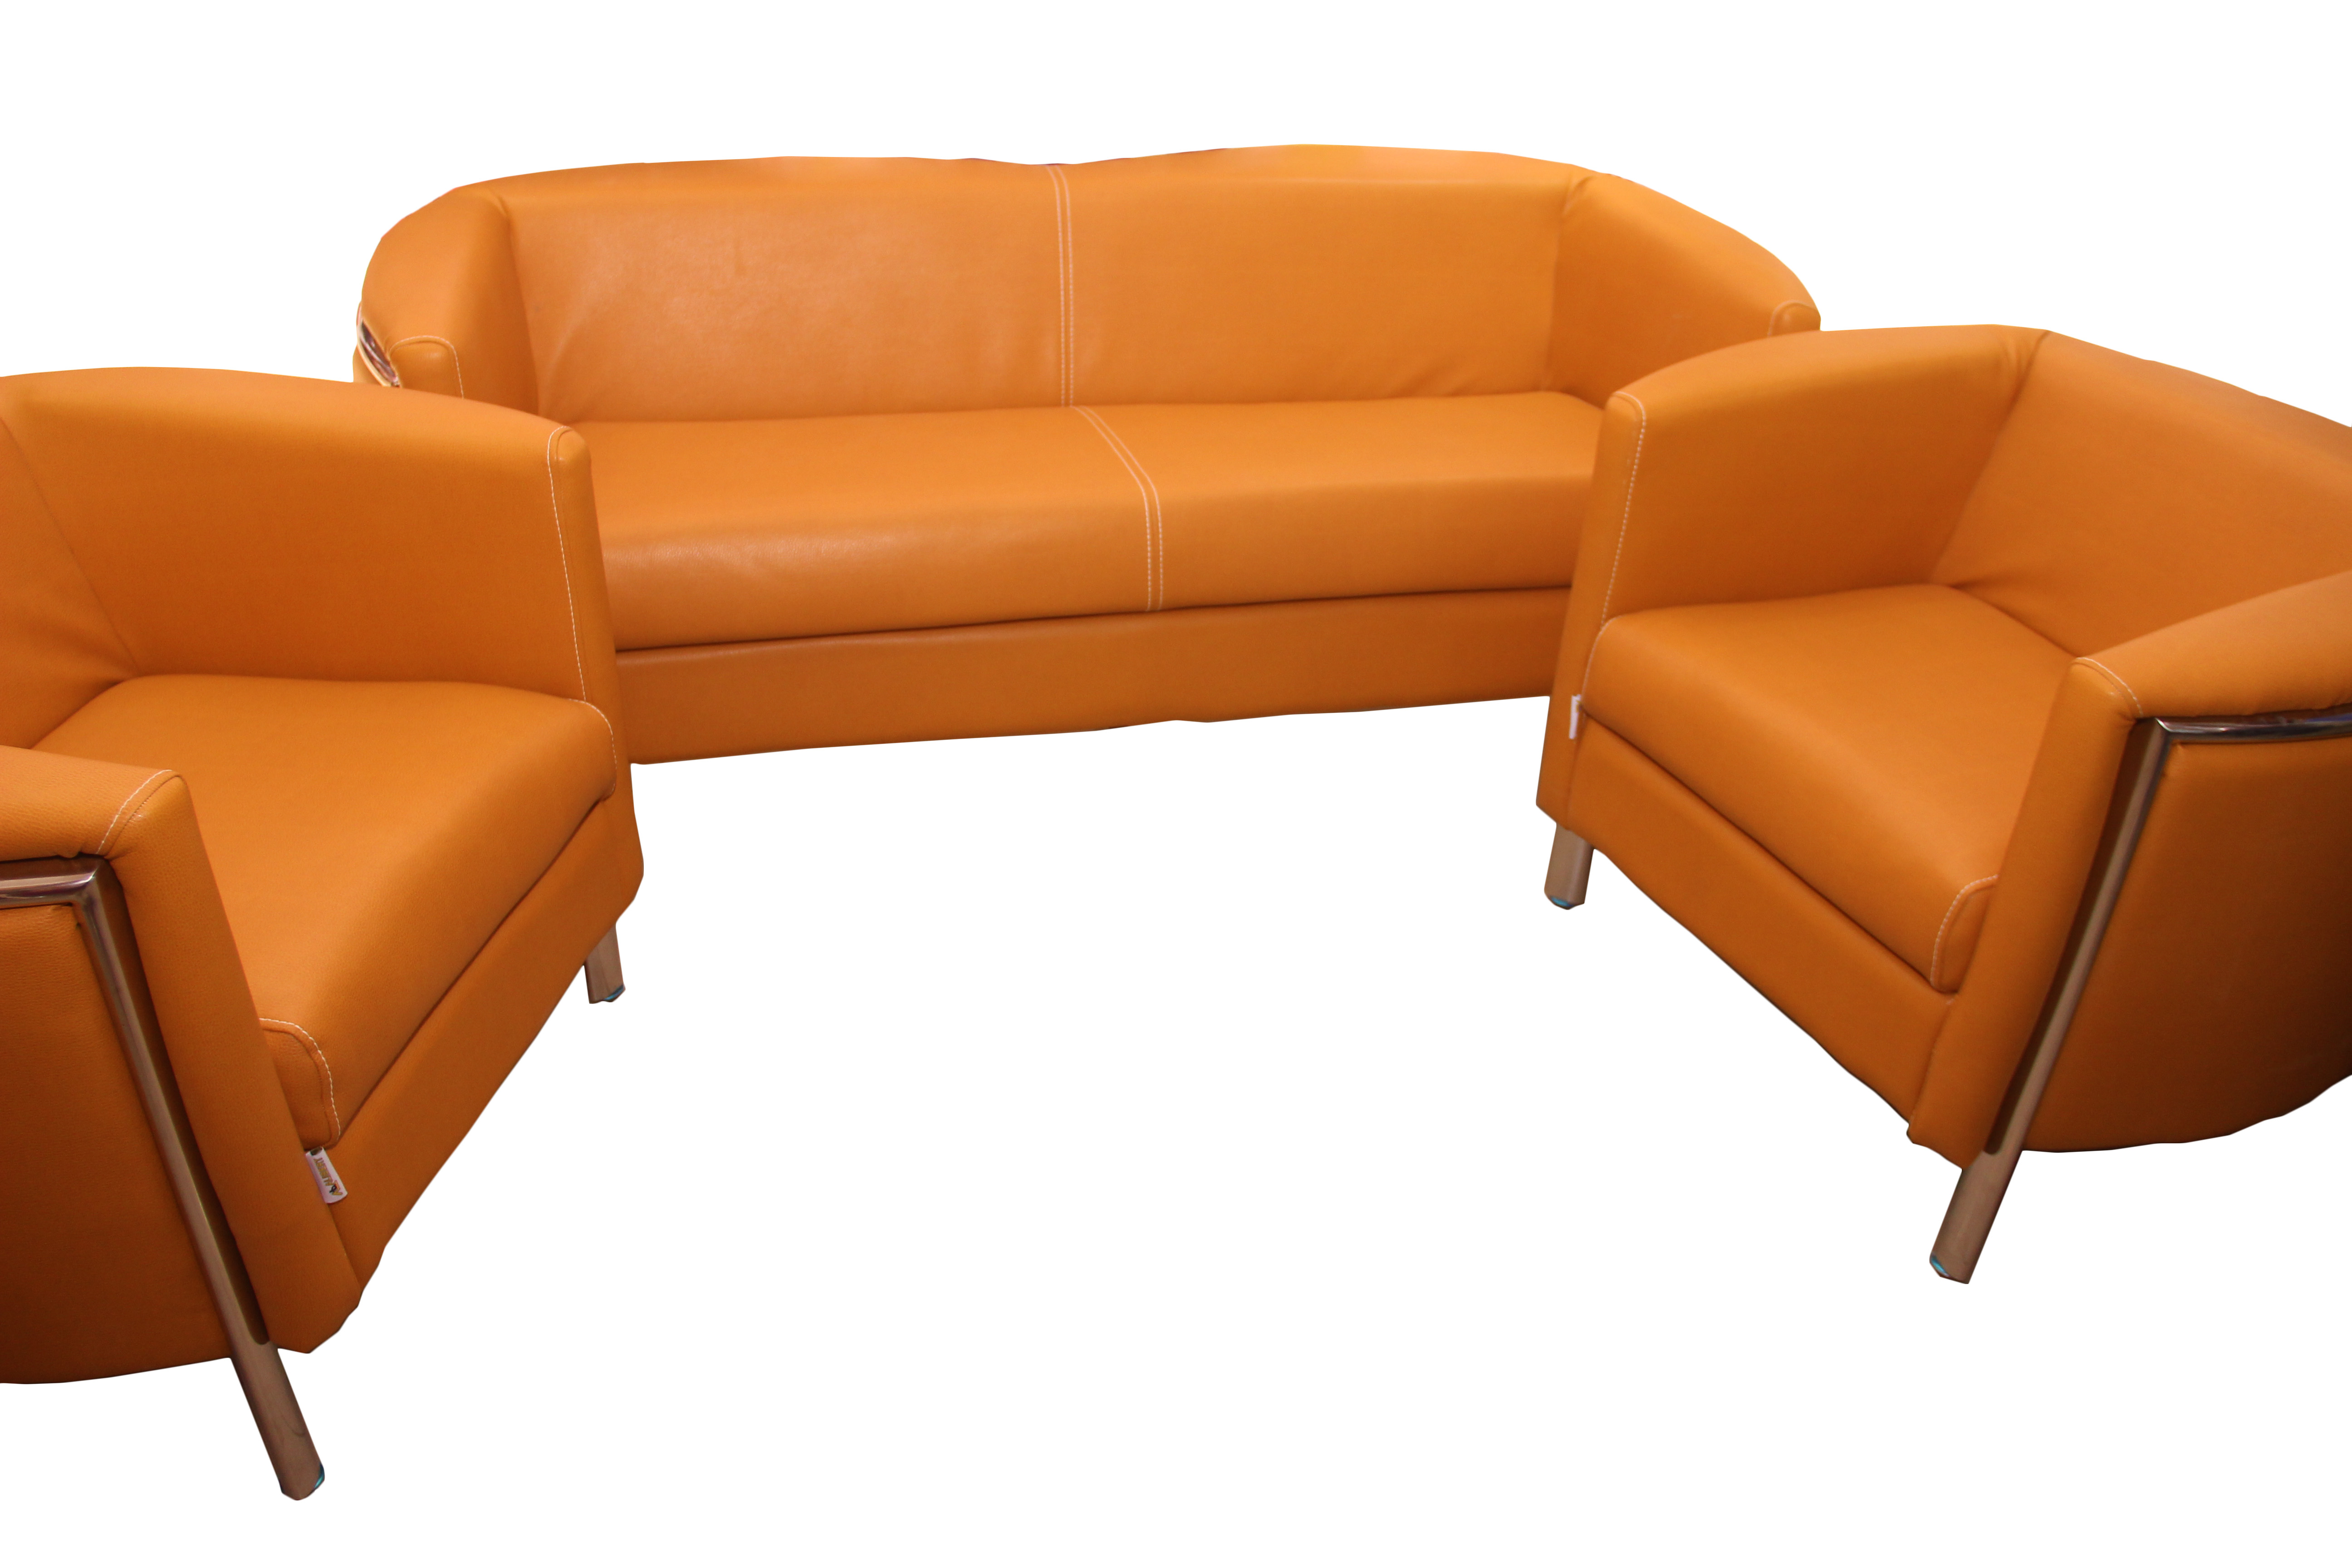 Living Room Sofa Buy Modern Sitting Room Chairs online in